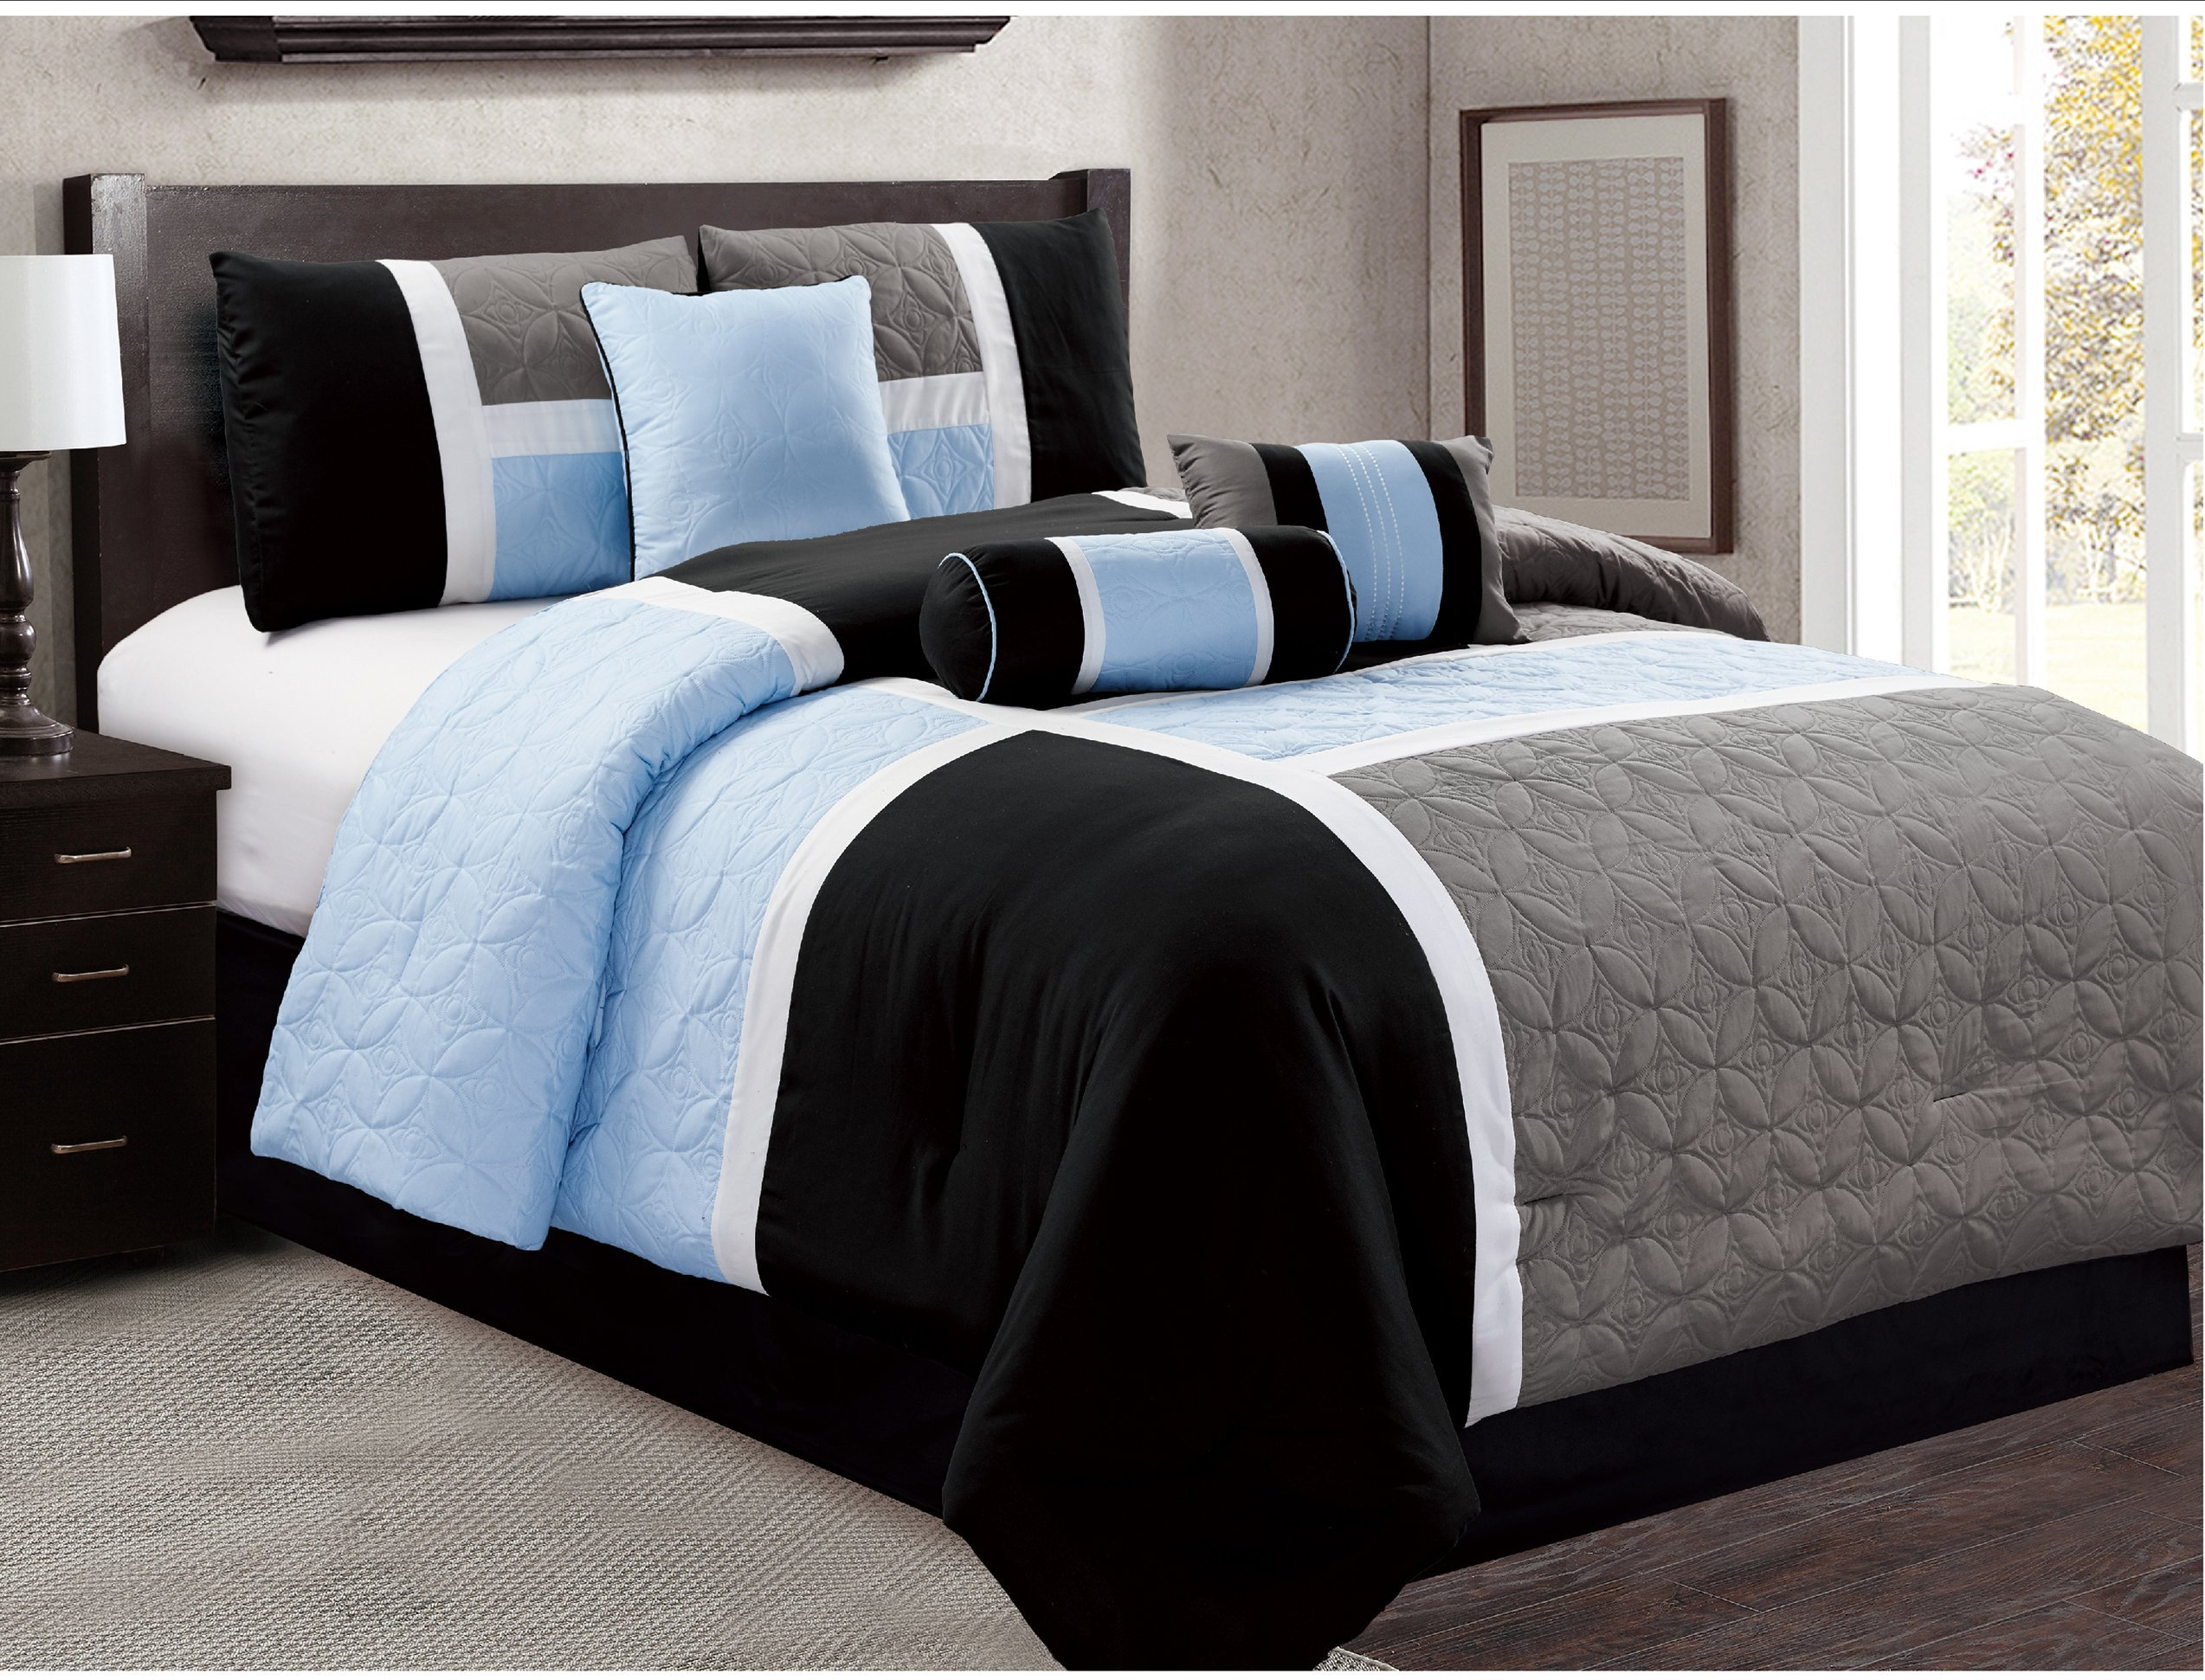 7 Piece Luxury Bed in bag Comforter Set - Closeout (King, Black / Blue)